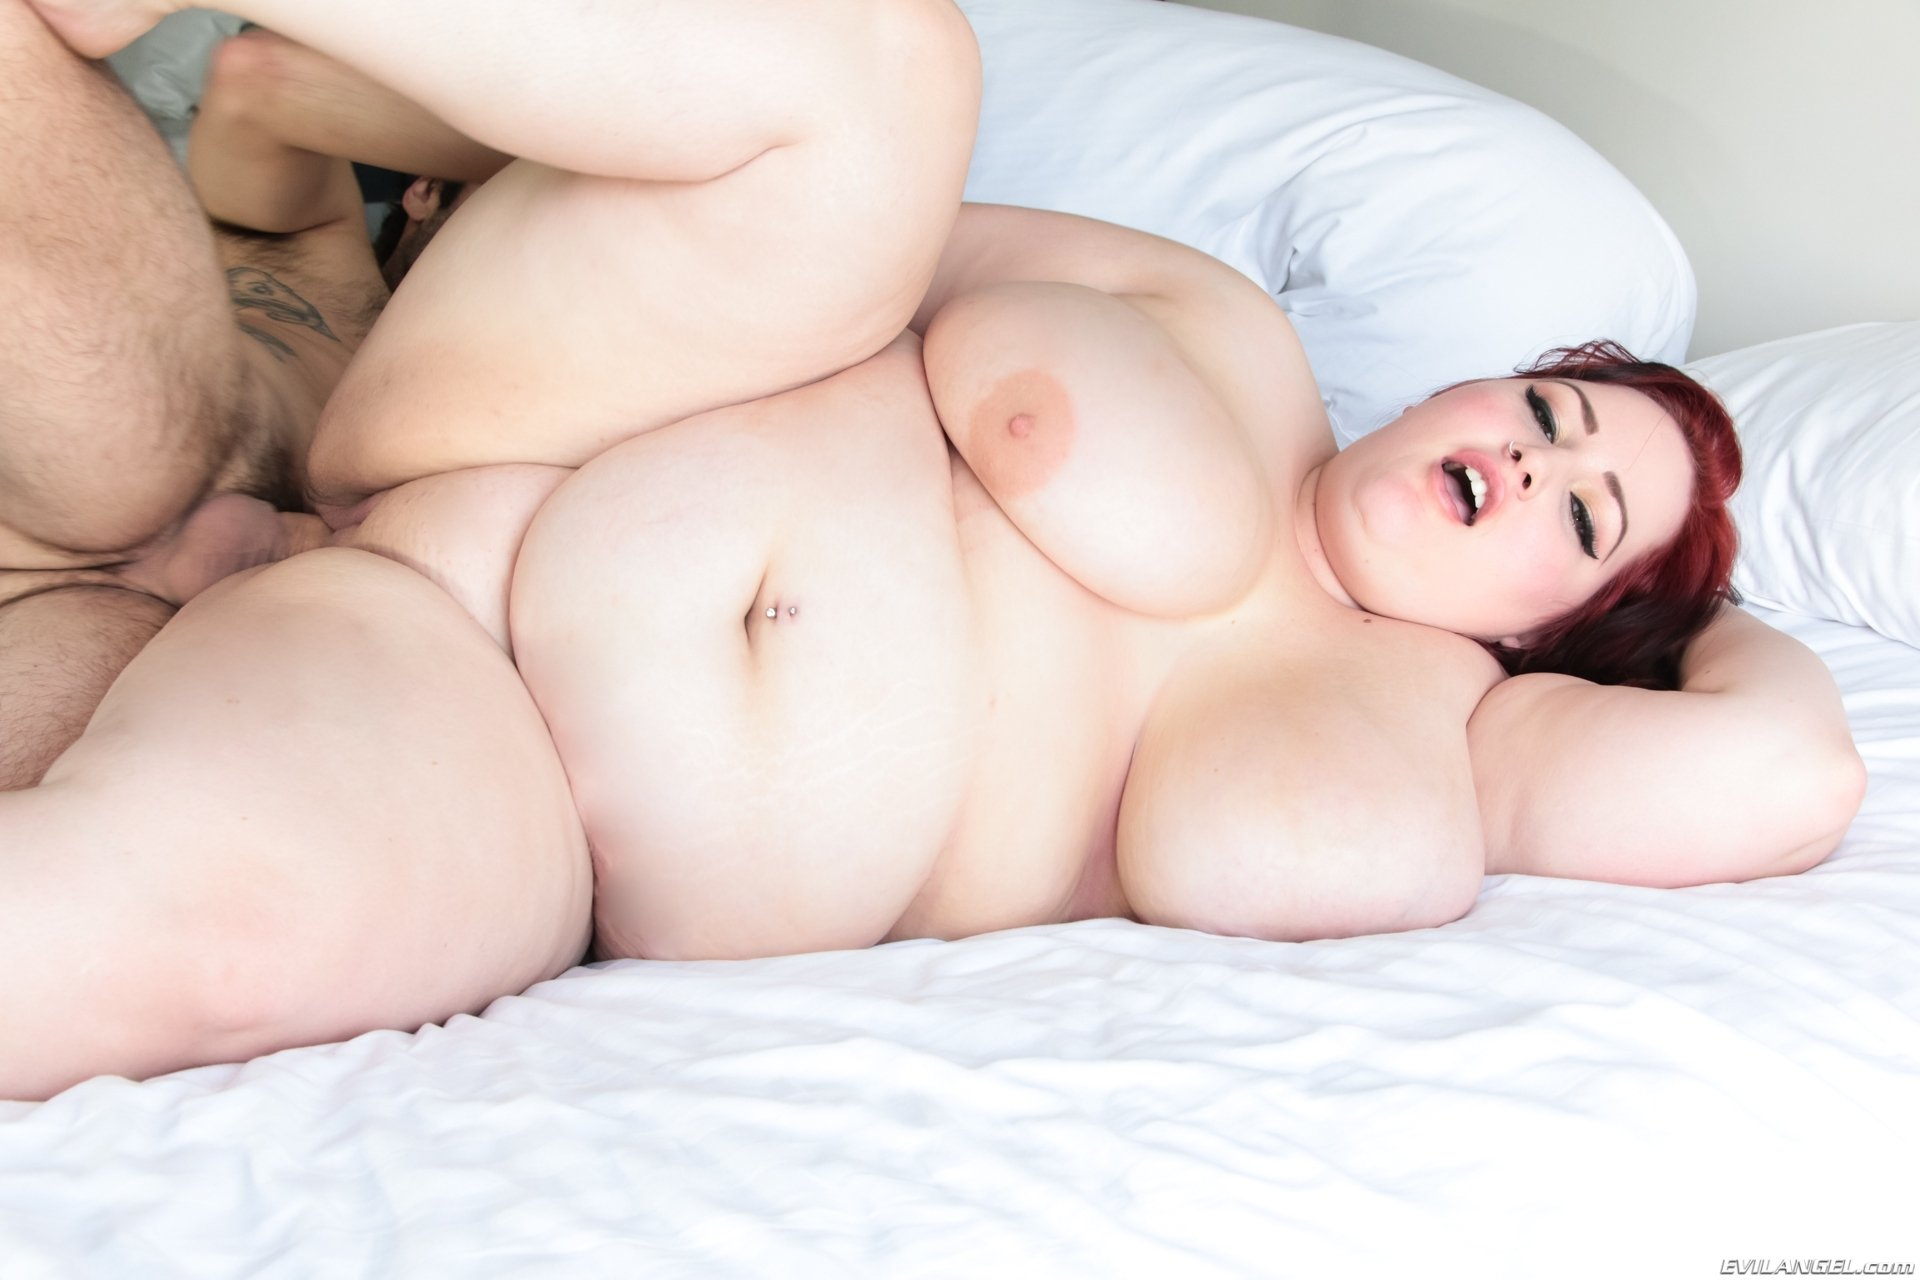 Free amateur girl cams